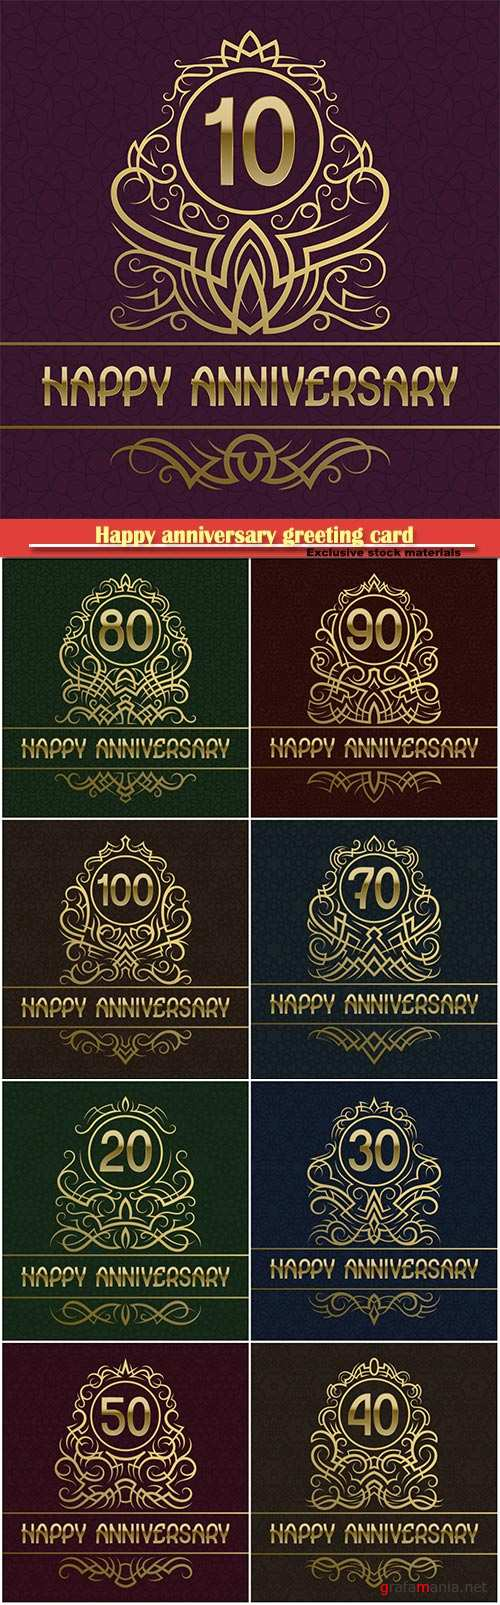 Happy anniversary greeting card with vintage design golden elements